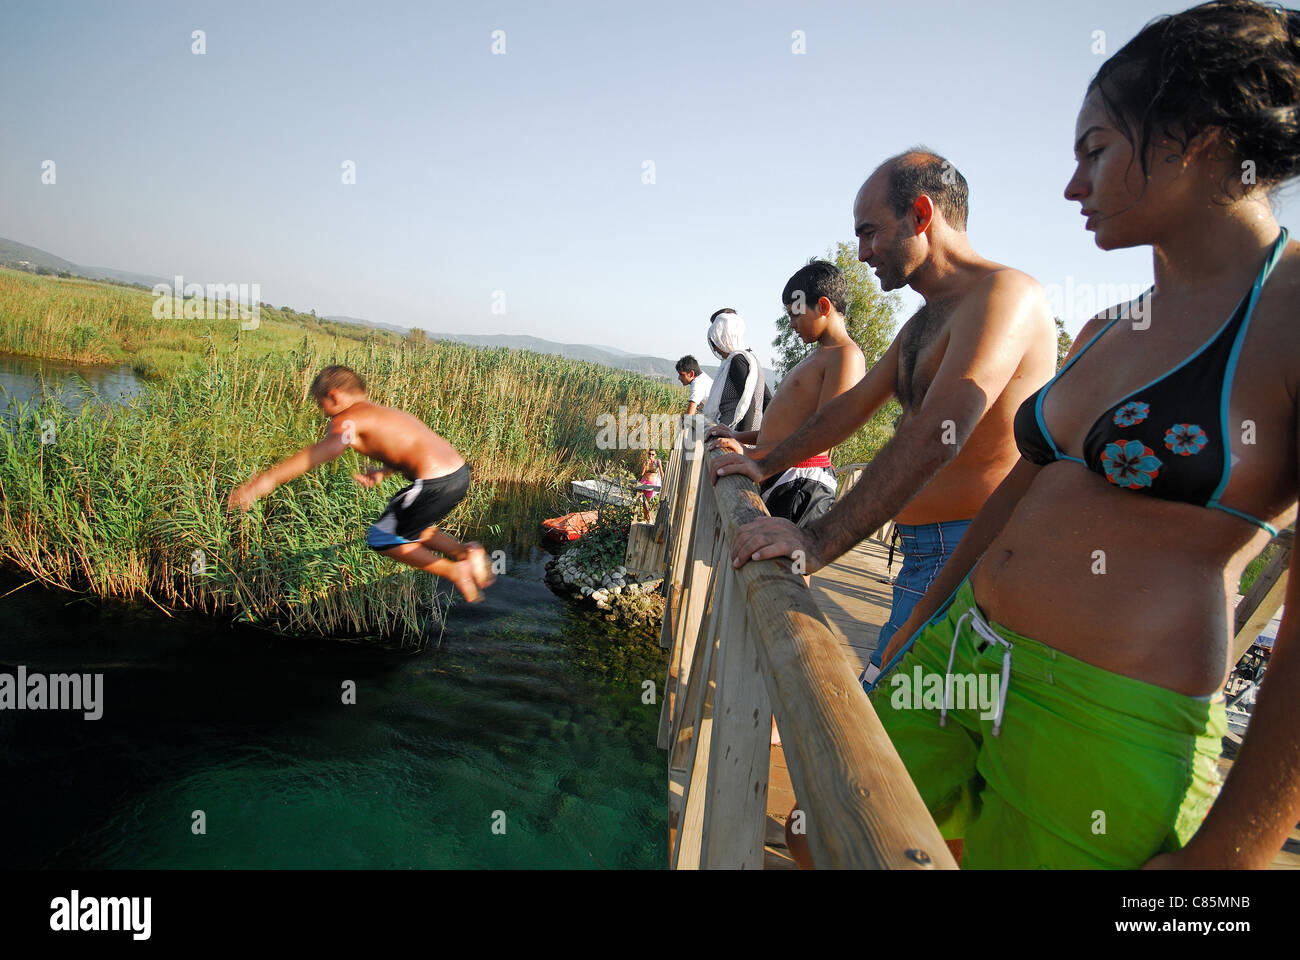 AKYAKA, TURKEY. A young boy jumping off a bridge into the Azmak river, with his family watching. 2011. - Stock Image